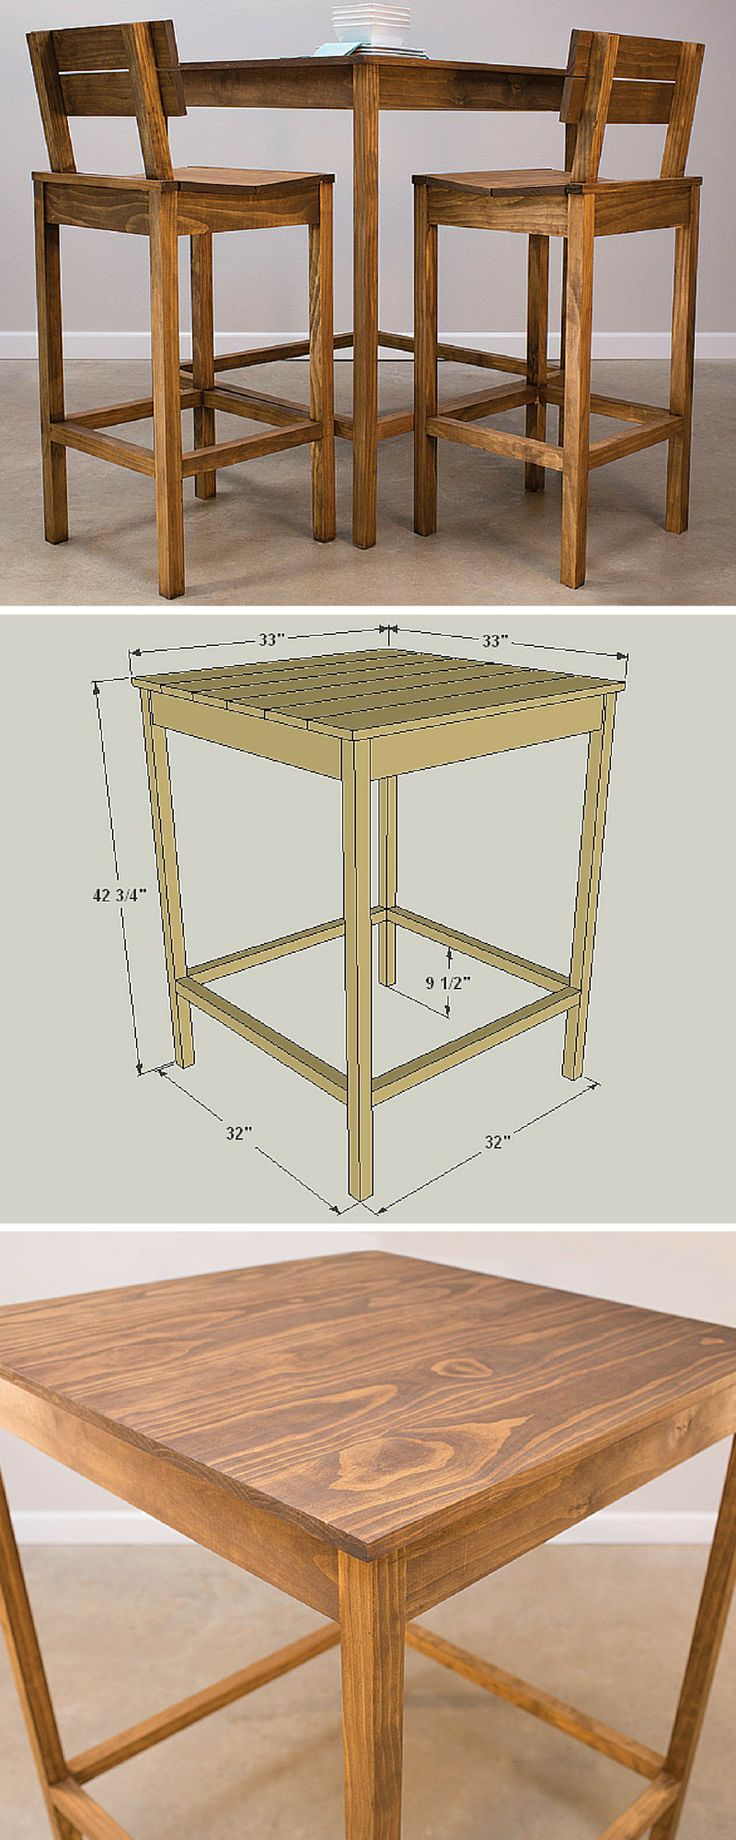 This pub table looks great, and will fit in your kitchen—or many other places—thanks to its compact size. Plus, the pub table is surprisingly simple to build from just a few boards you can get at any home center. It's the perfect companion to the Pub Chair plan you'll find on BuildSomething. Get the free DIY plans at buildsomething.com